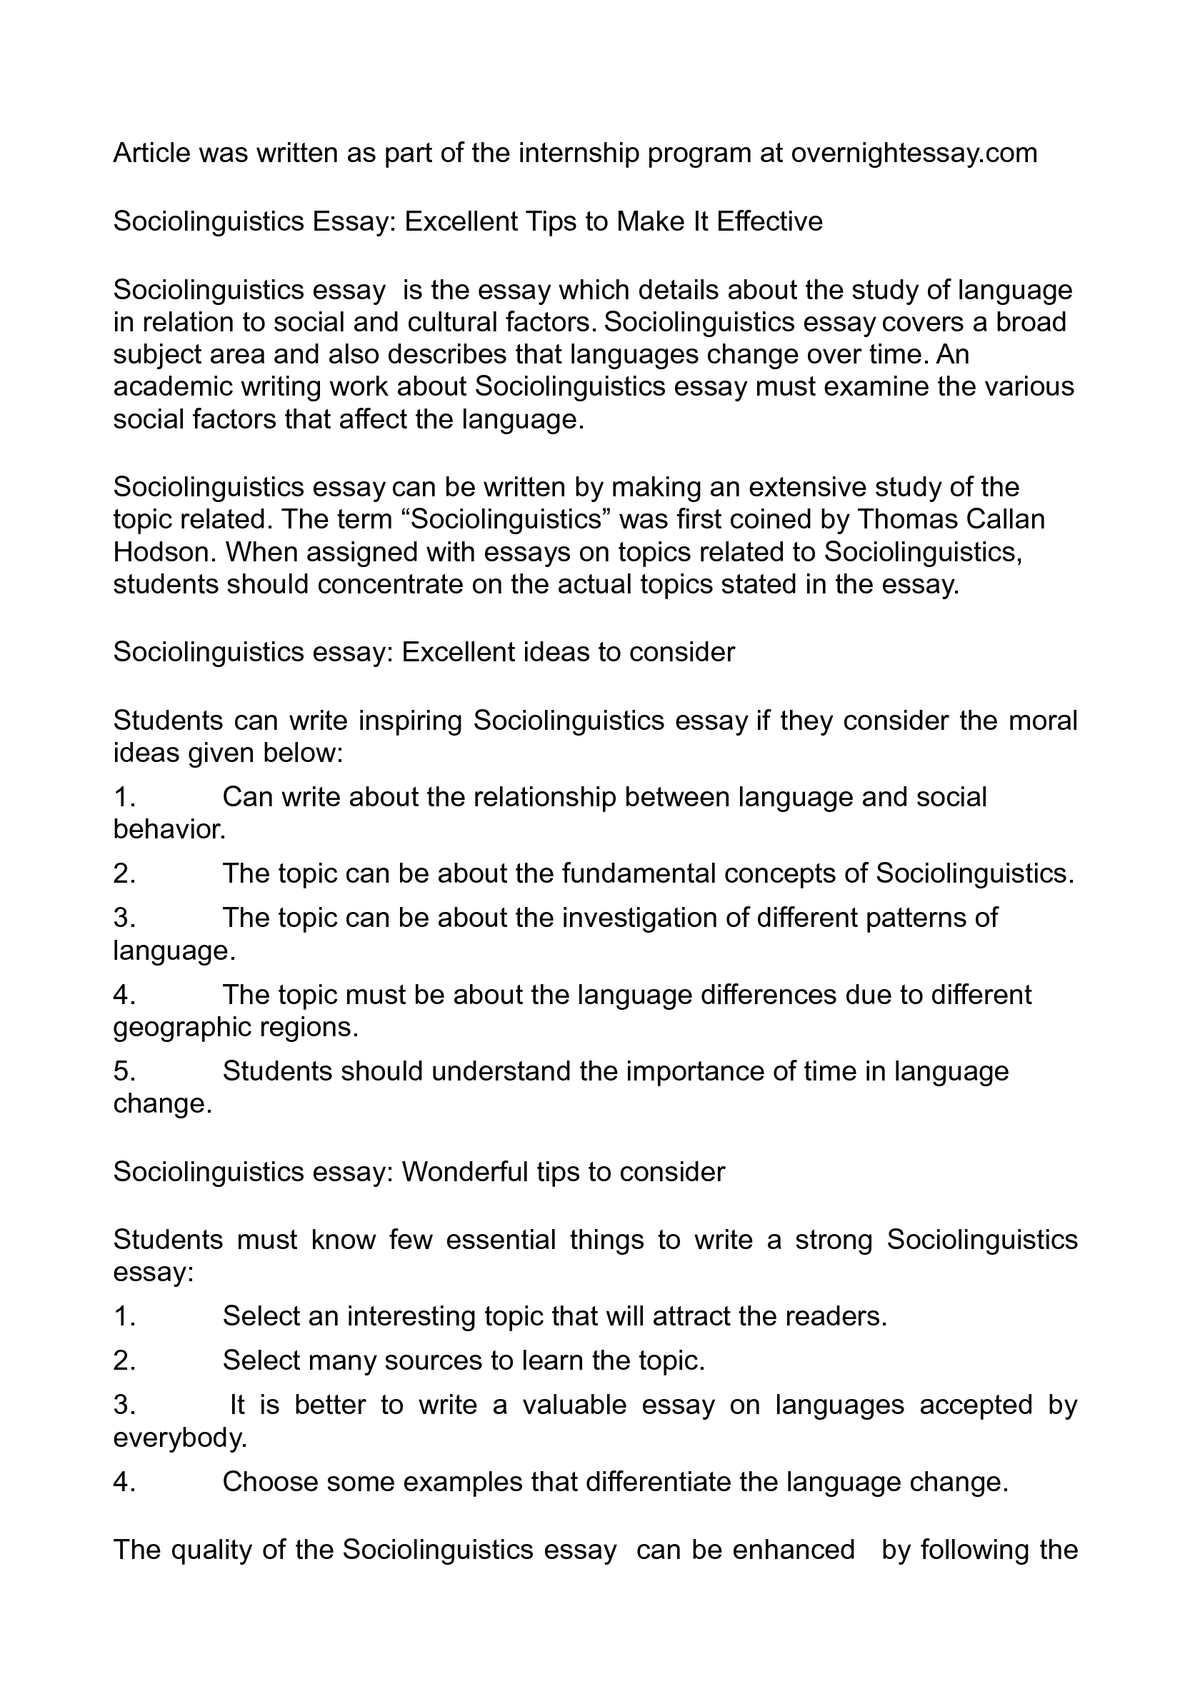 004 P1 Essay Example Change For The Beautiful Better How Can We World To Full